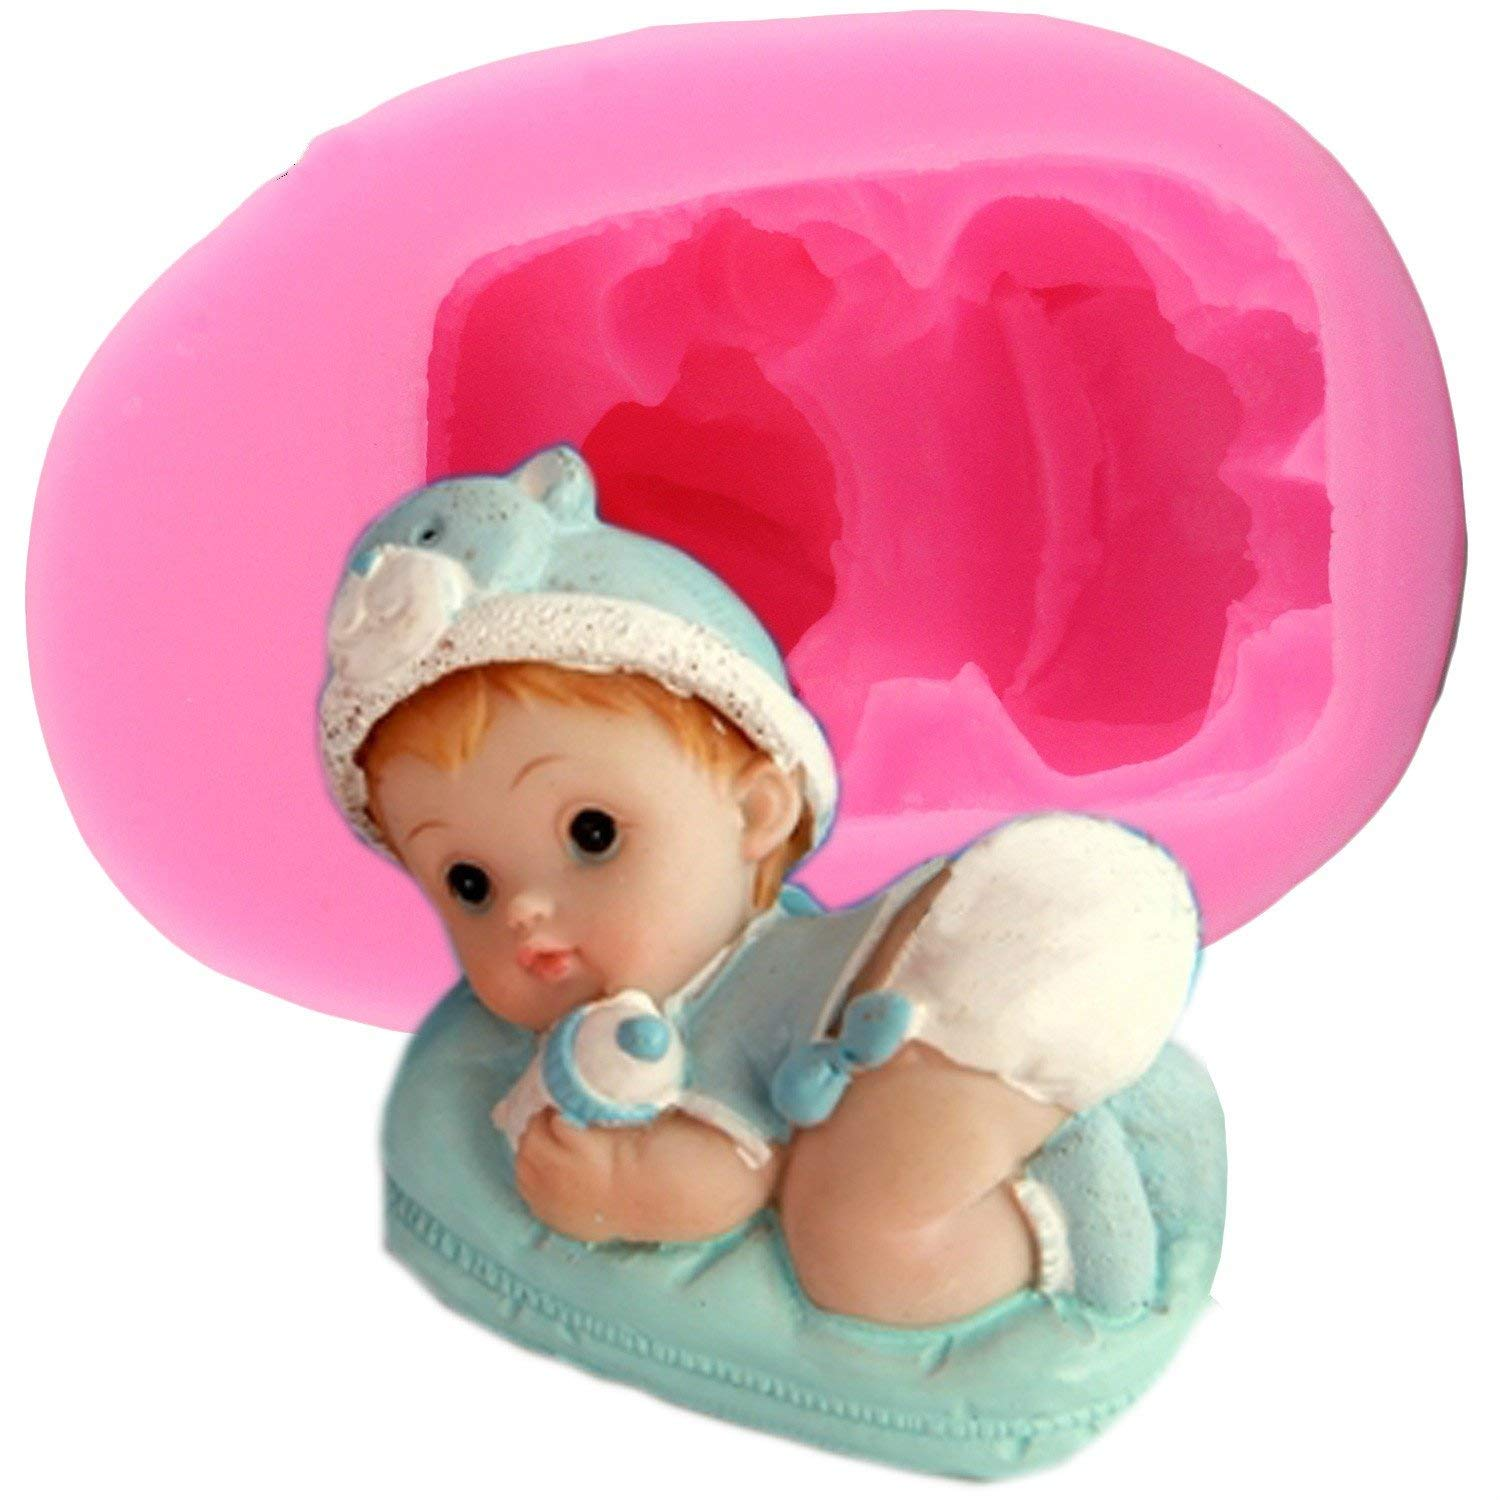 """Cute Baby Silicone Fondant Mold Cake Decoration Candy Chocolate Making Mold (3.74 1.97 1.65"""")"""